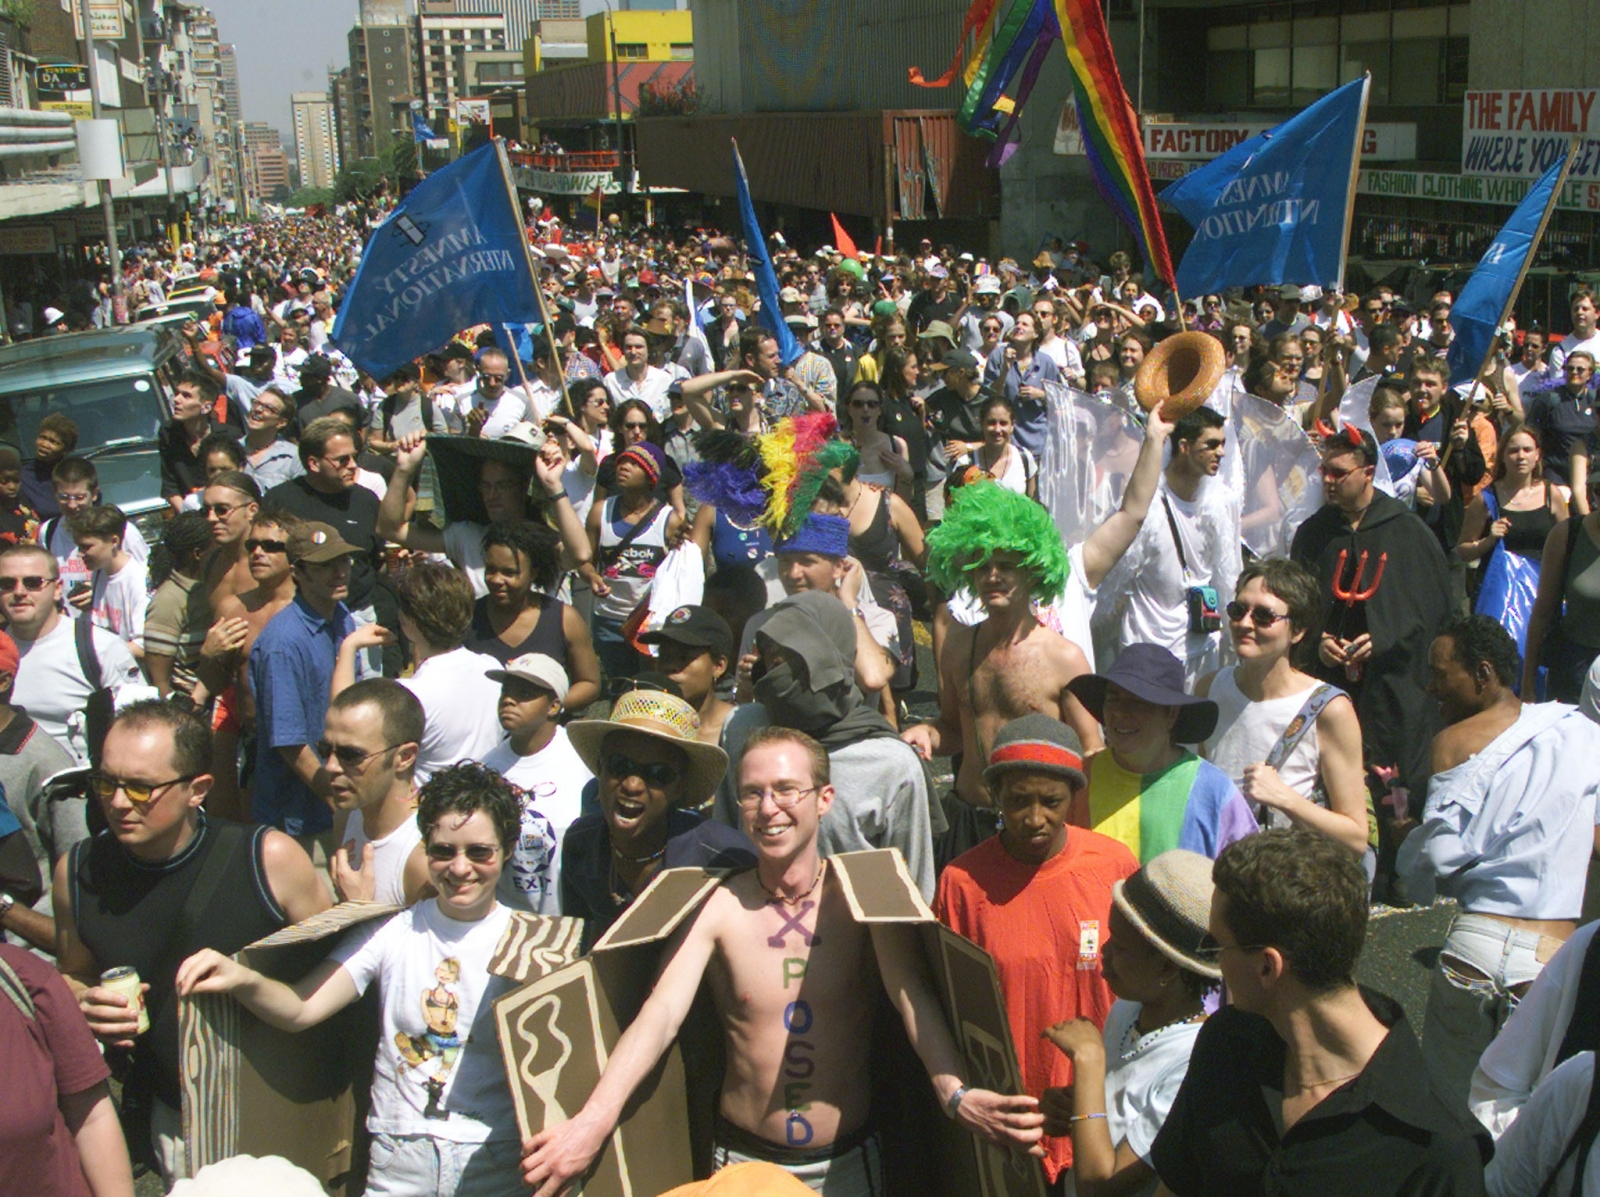 gay lesbians lgtb rights Founded in 1971, glaa is an all-volunteer, non-partisan, non-profit political organization that defends the civil rights of lesbian, gay, bisexual and transgender people in the nation's capital.